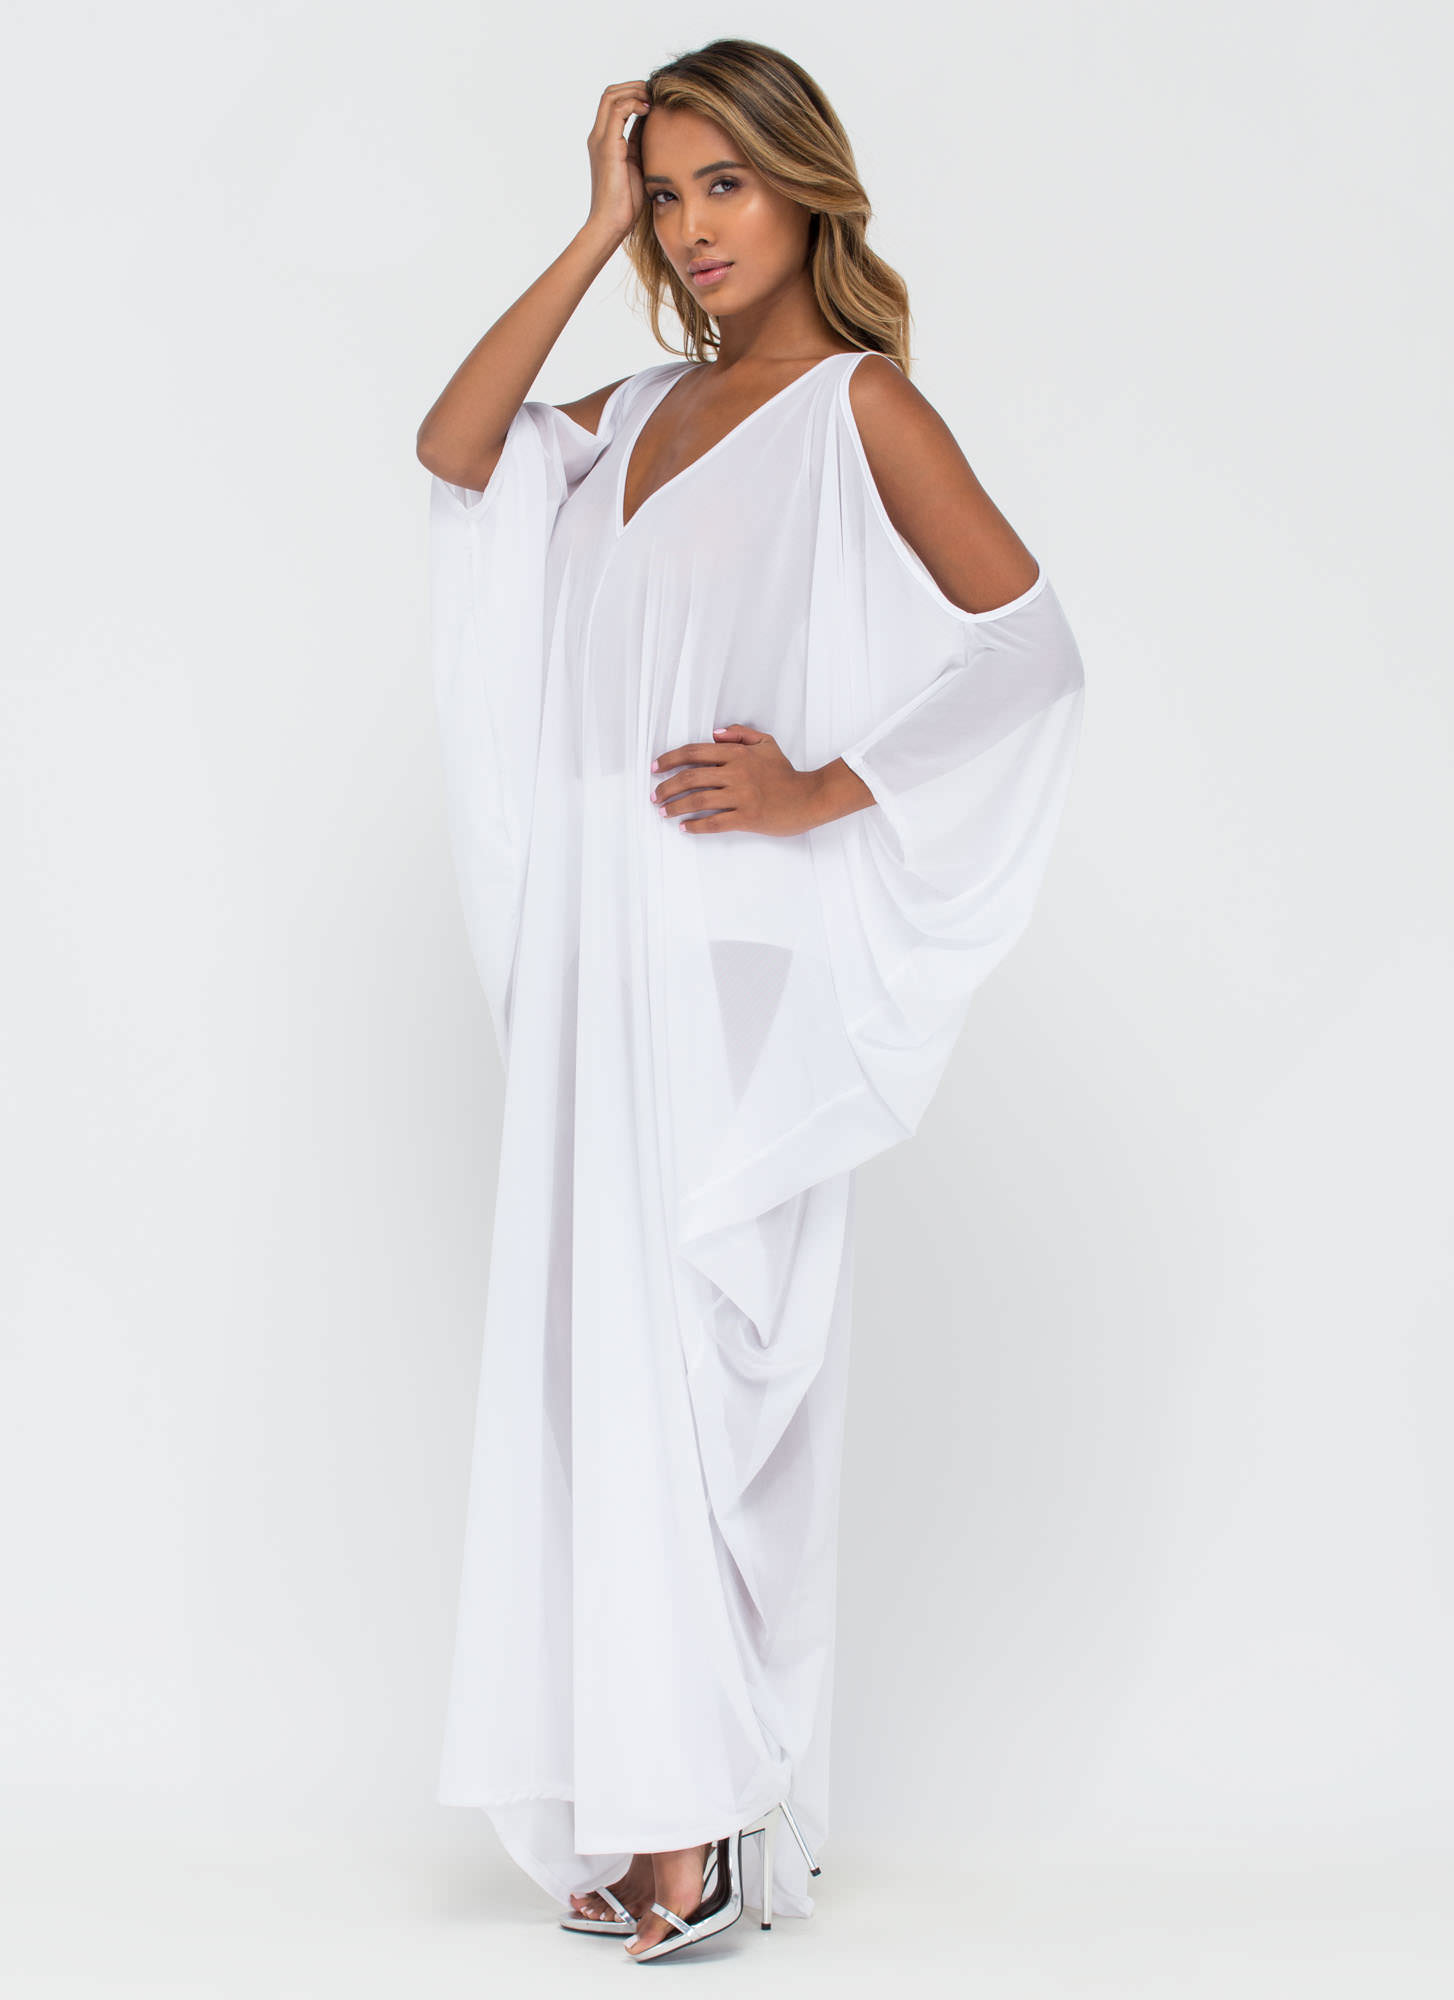 Chic 'N Sheer Plunging Caftan Maxi Dress WHITE